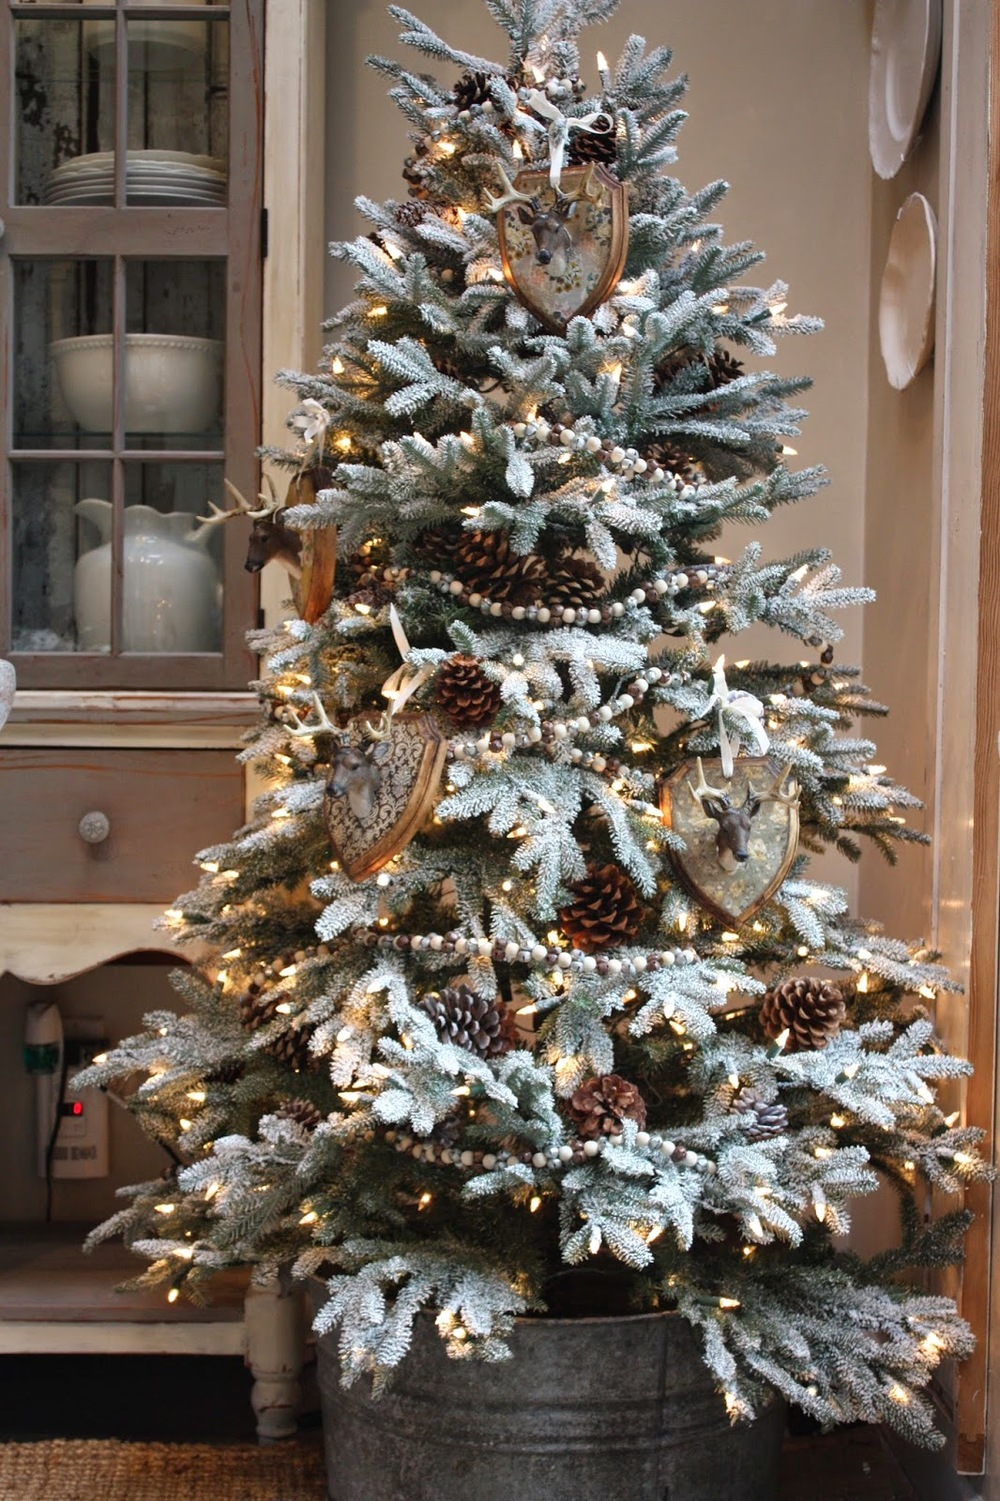 Rustic Woodsy Christmas Tree {Christmas Tree Inspiration Roundup} - Stevie Storck Design Co.